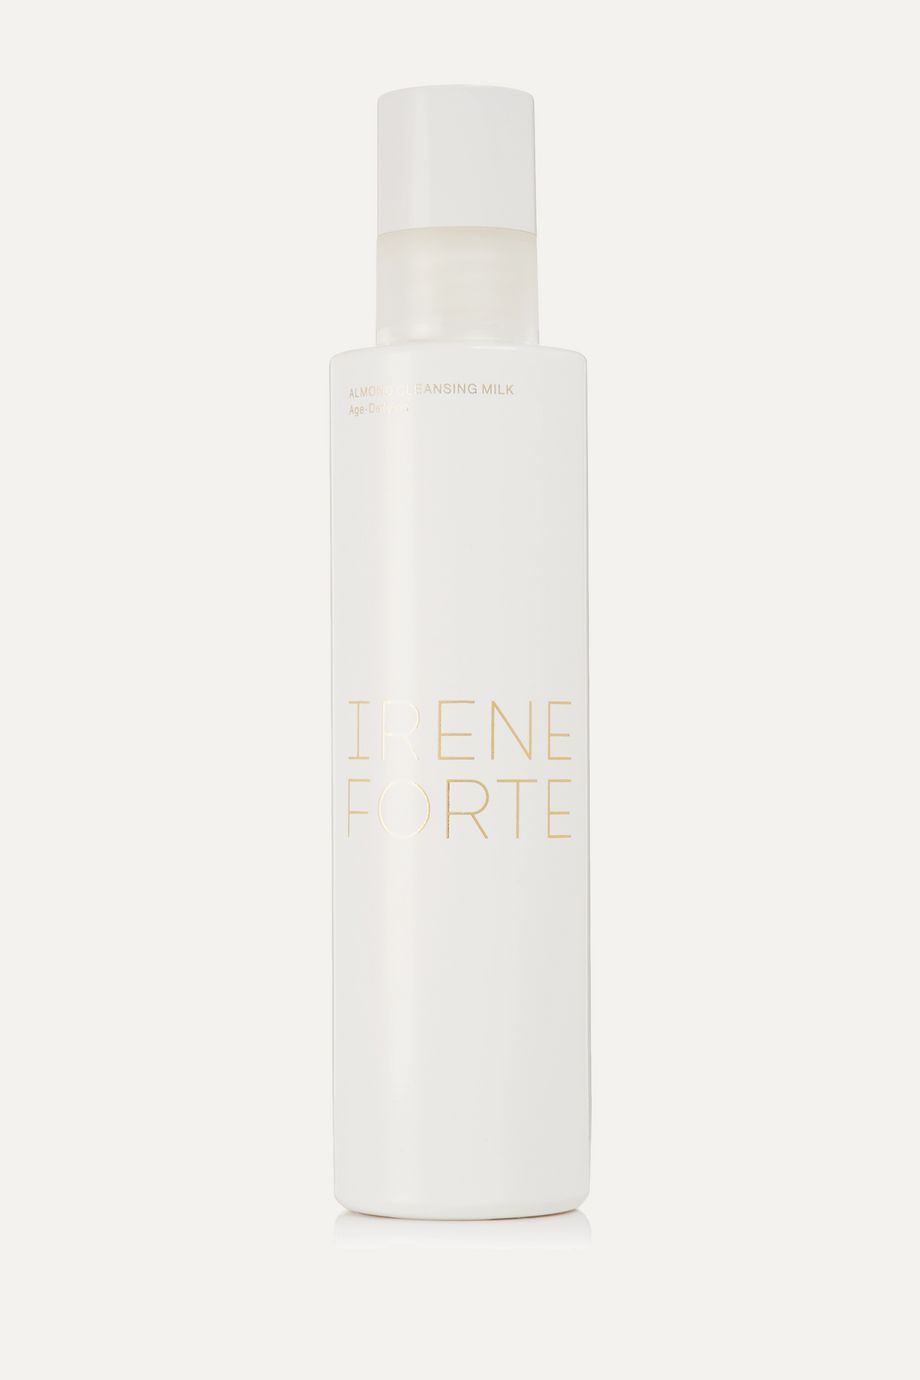 Irene Forte + NET SUSTAIN Age-Defying Almond Cleansing Milk, 200ml